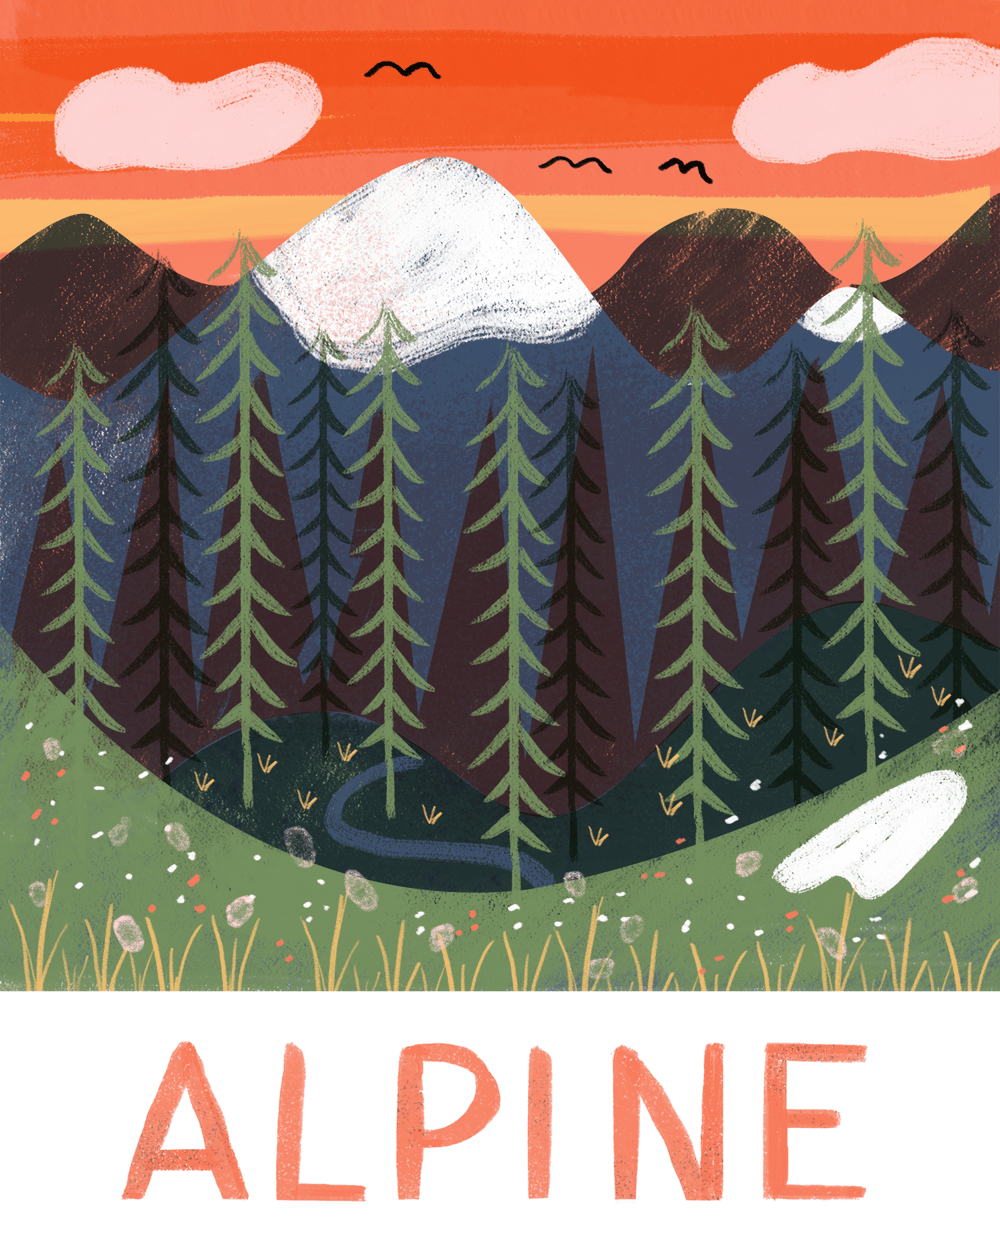 Alpine & Camping - image 1 - student project